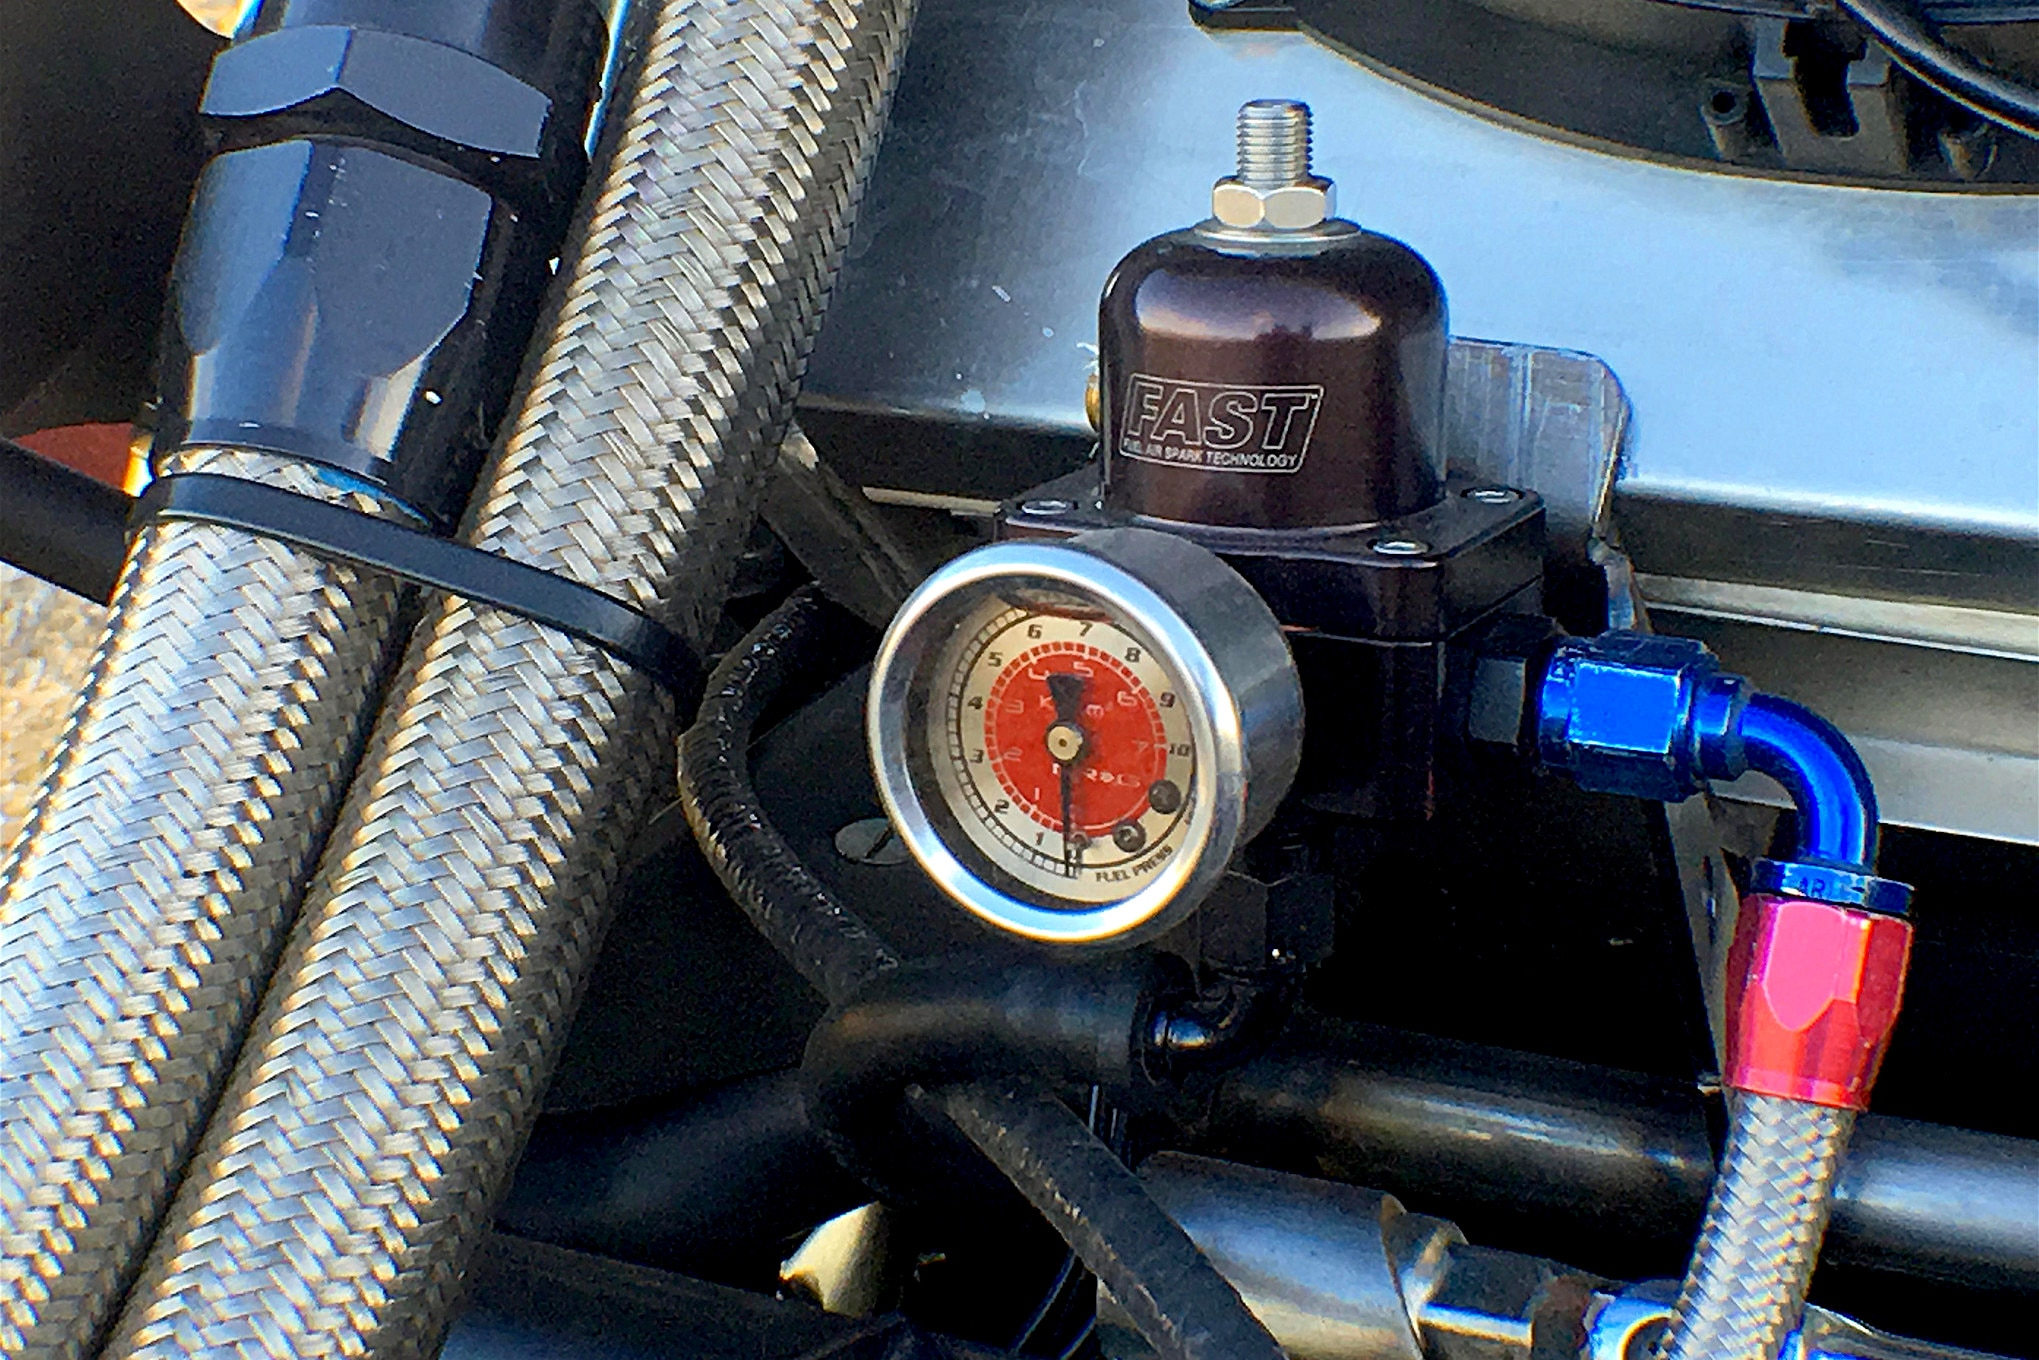 The FAST fuel system is plumbed with braided steel lines.